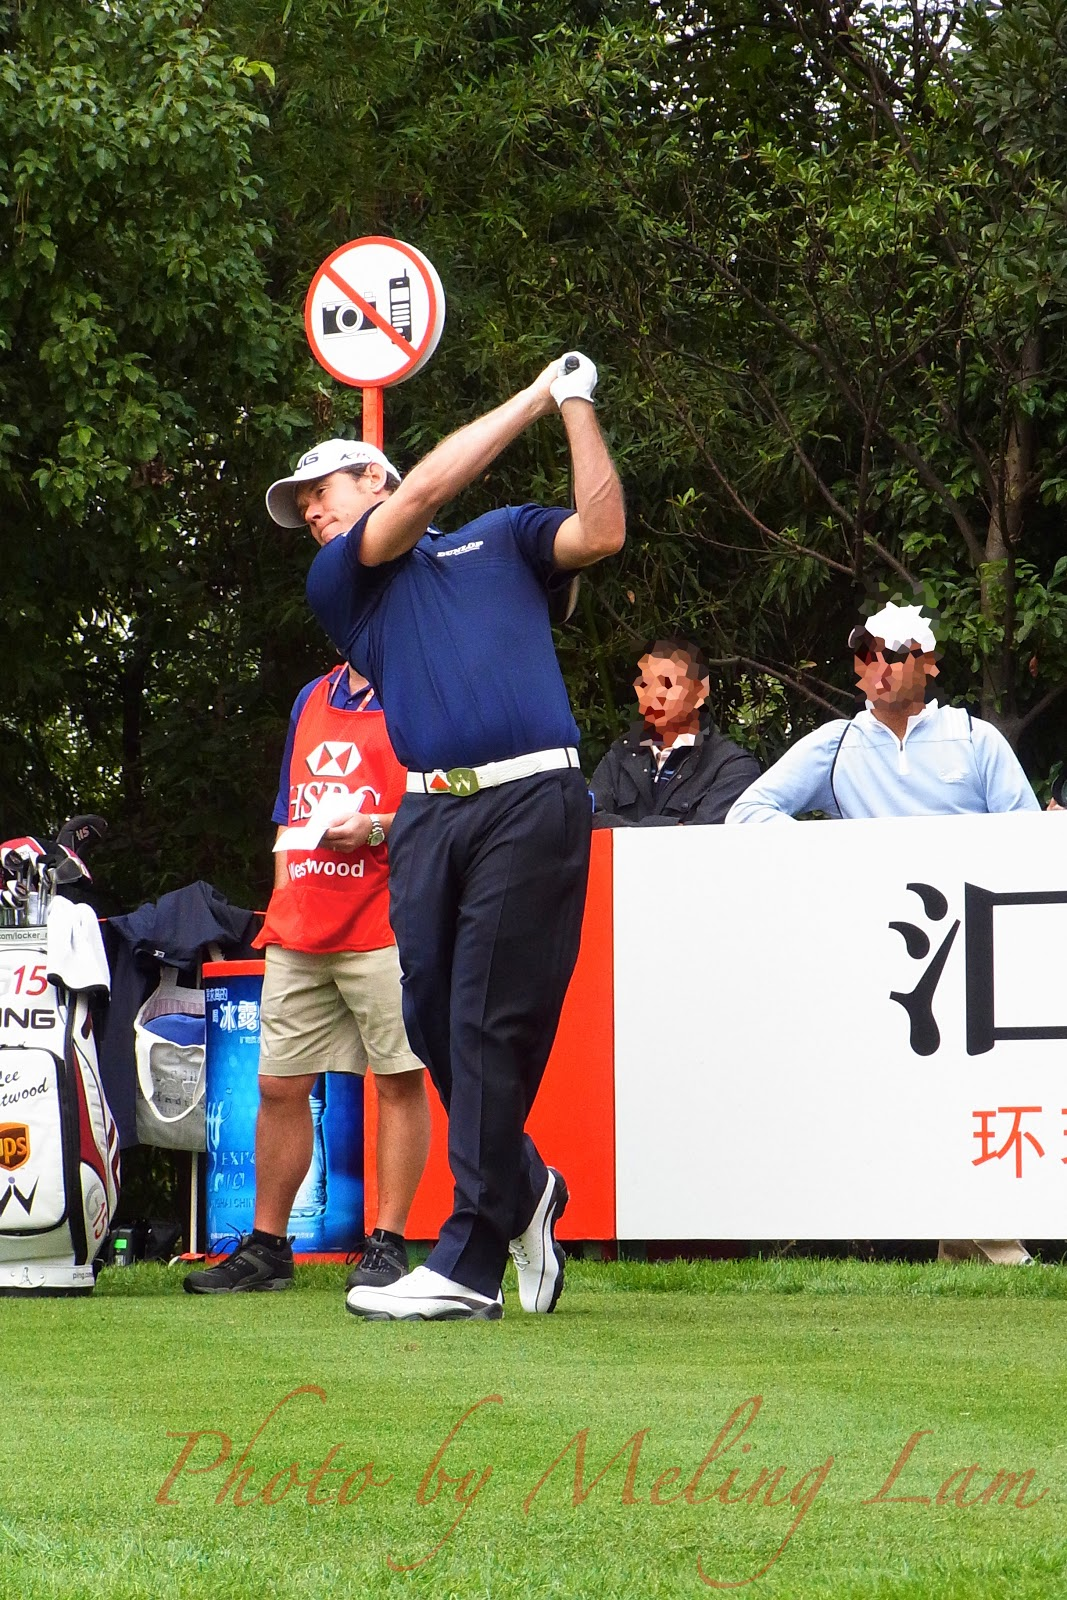 wgc-hsbc golf champions pro-am Competition shanghai sheshan lee westwood